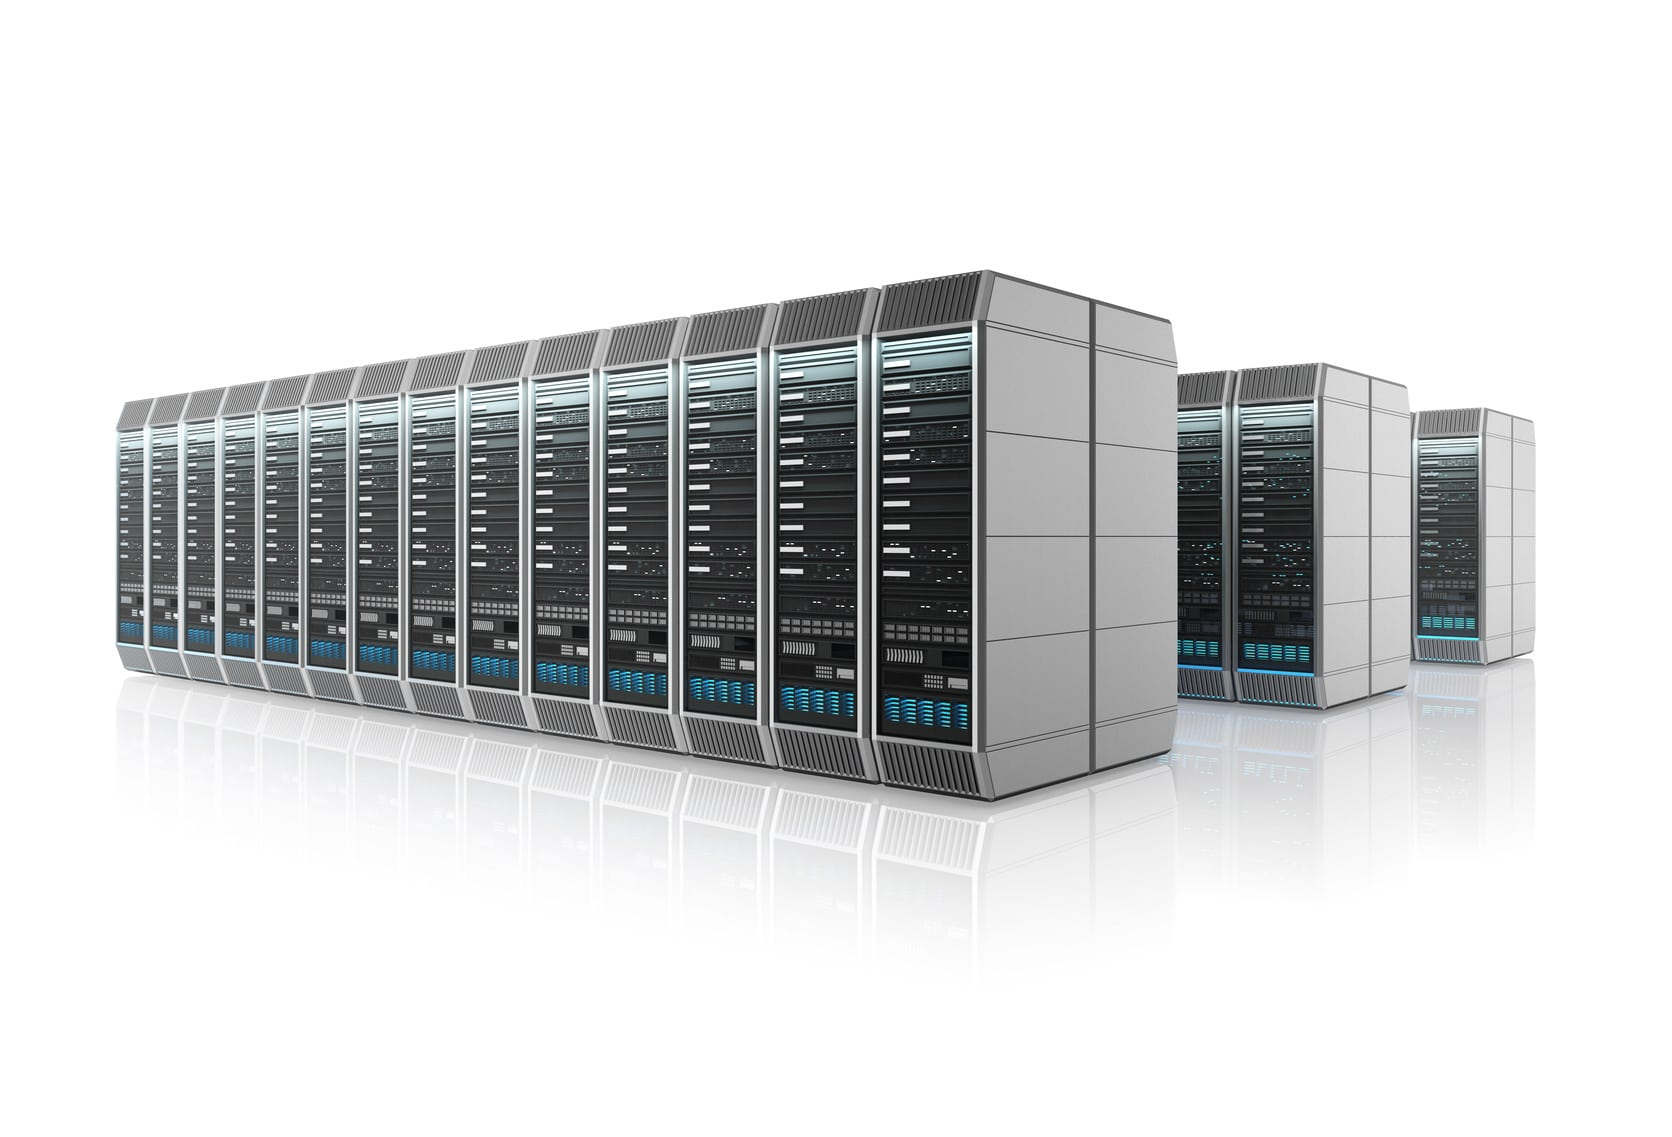 Rows of servers in cloud data center